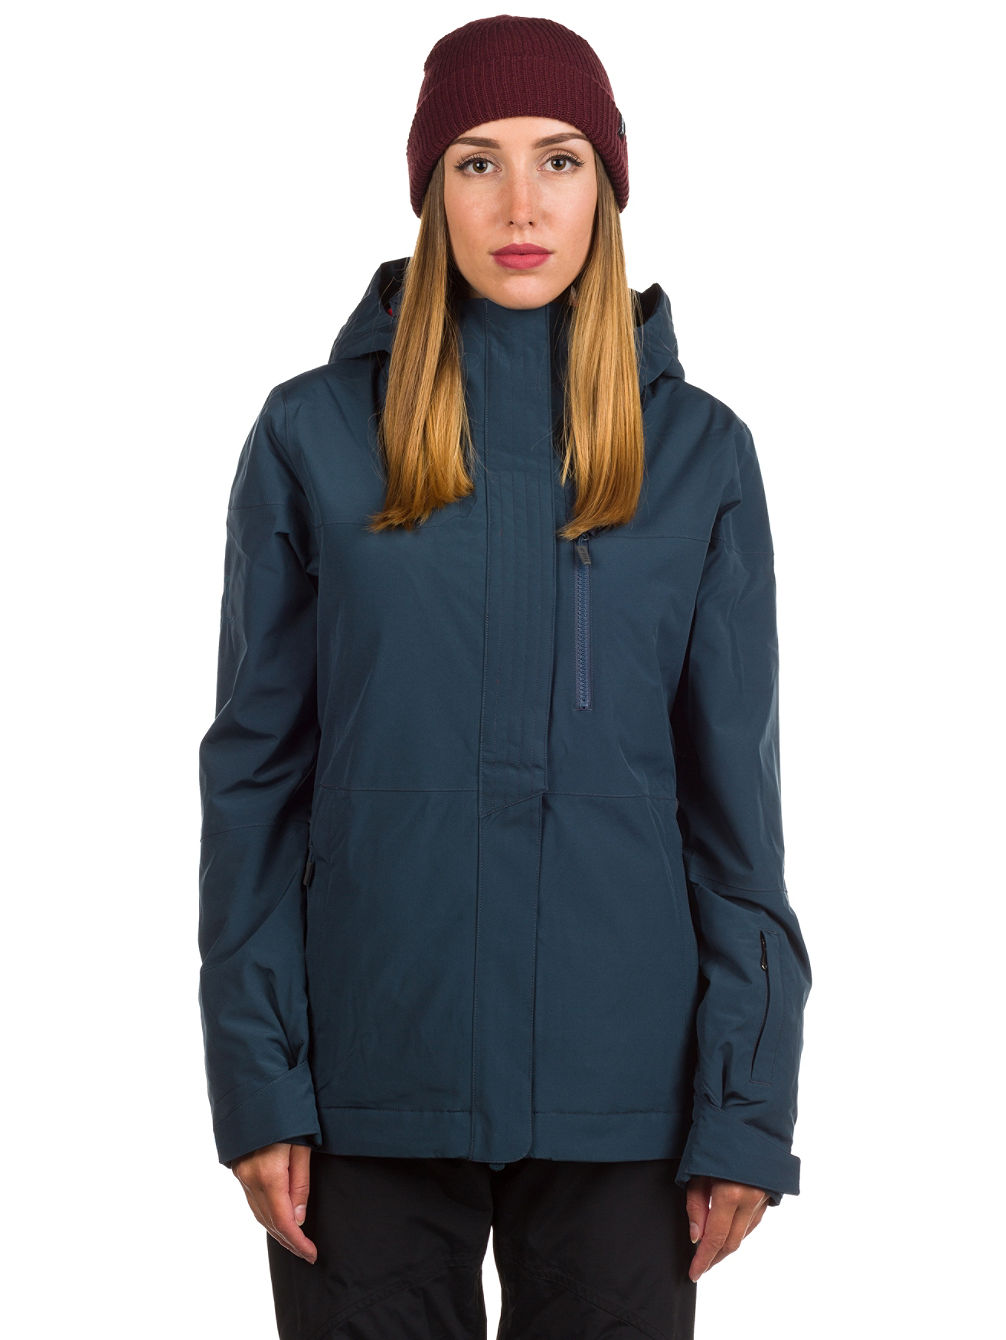 Ultimate Dryo 30 Jacket